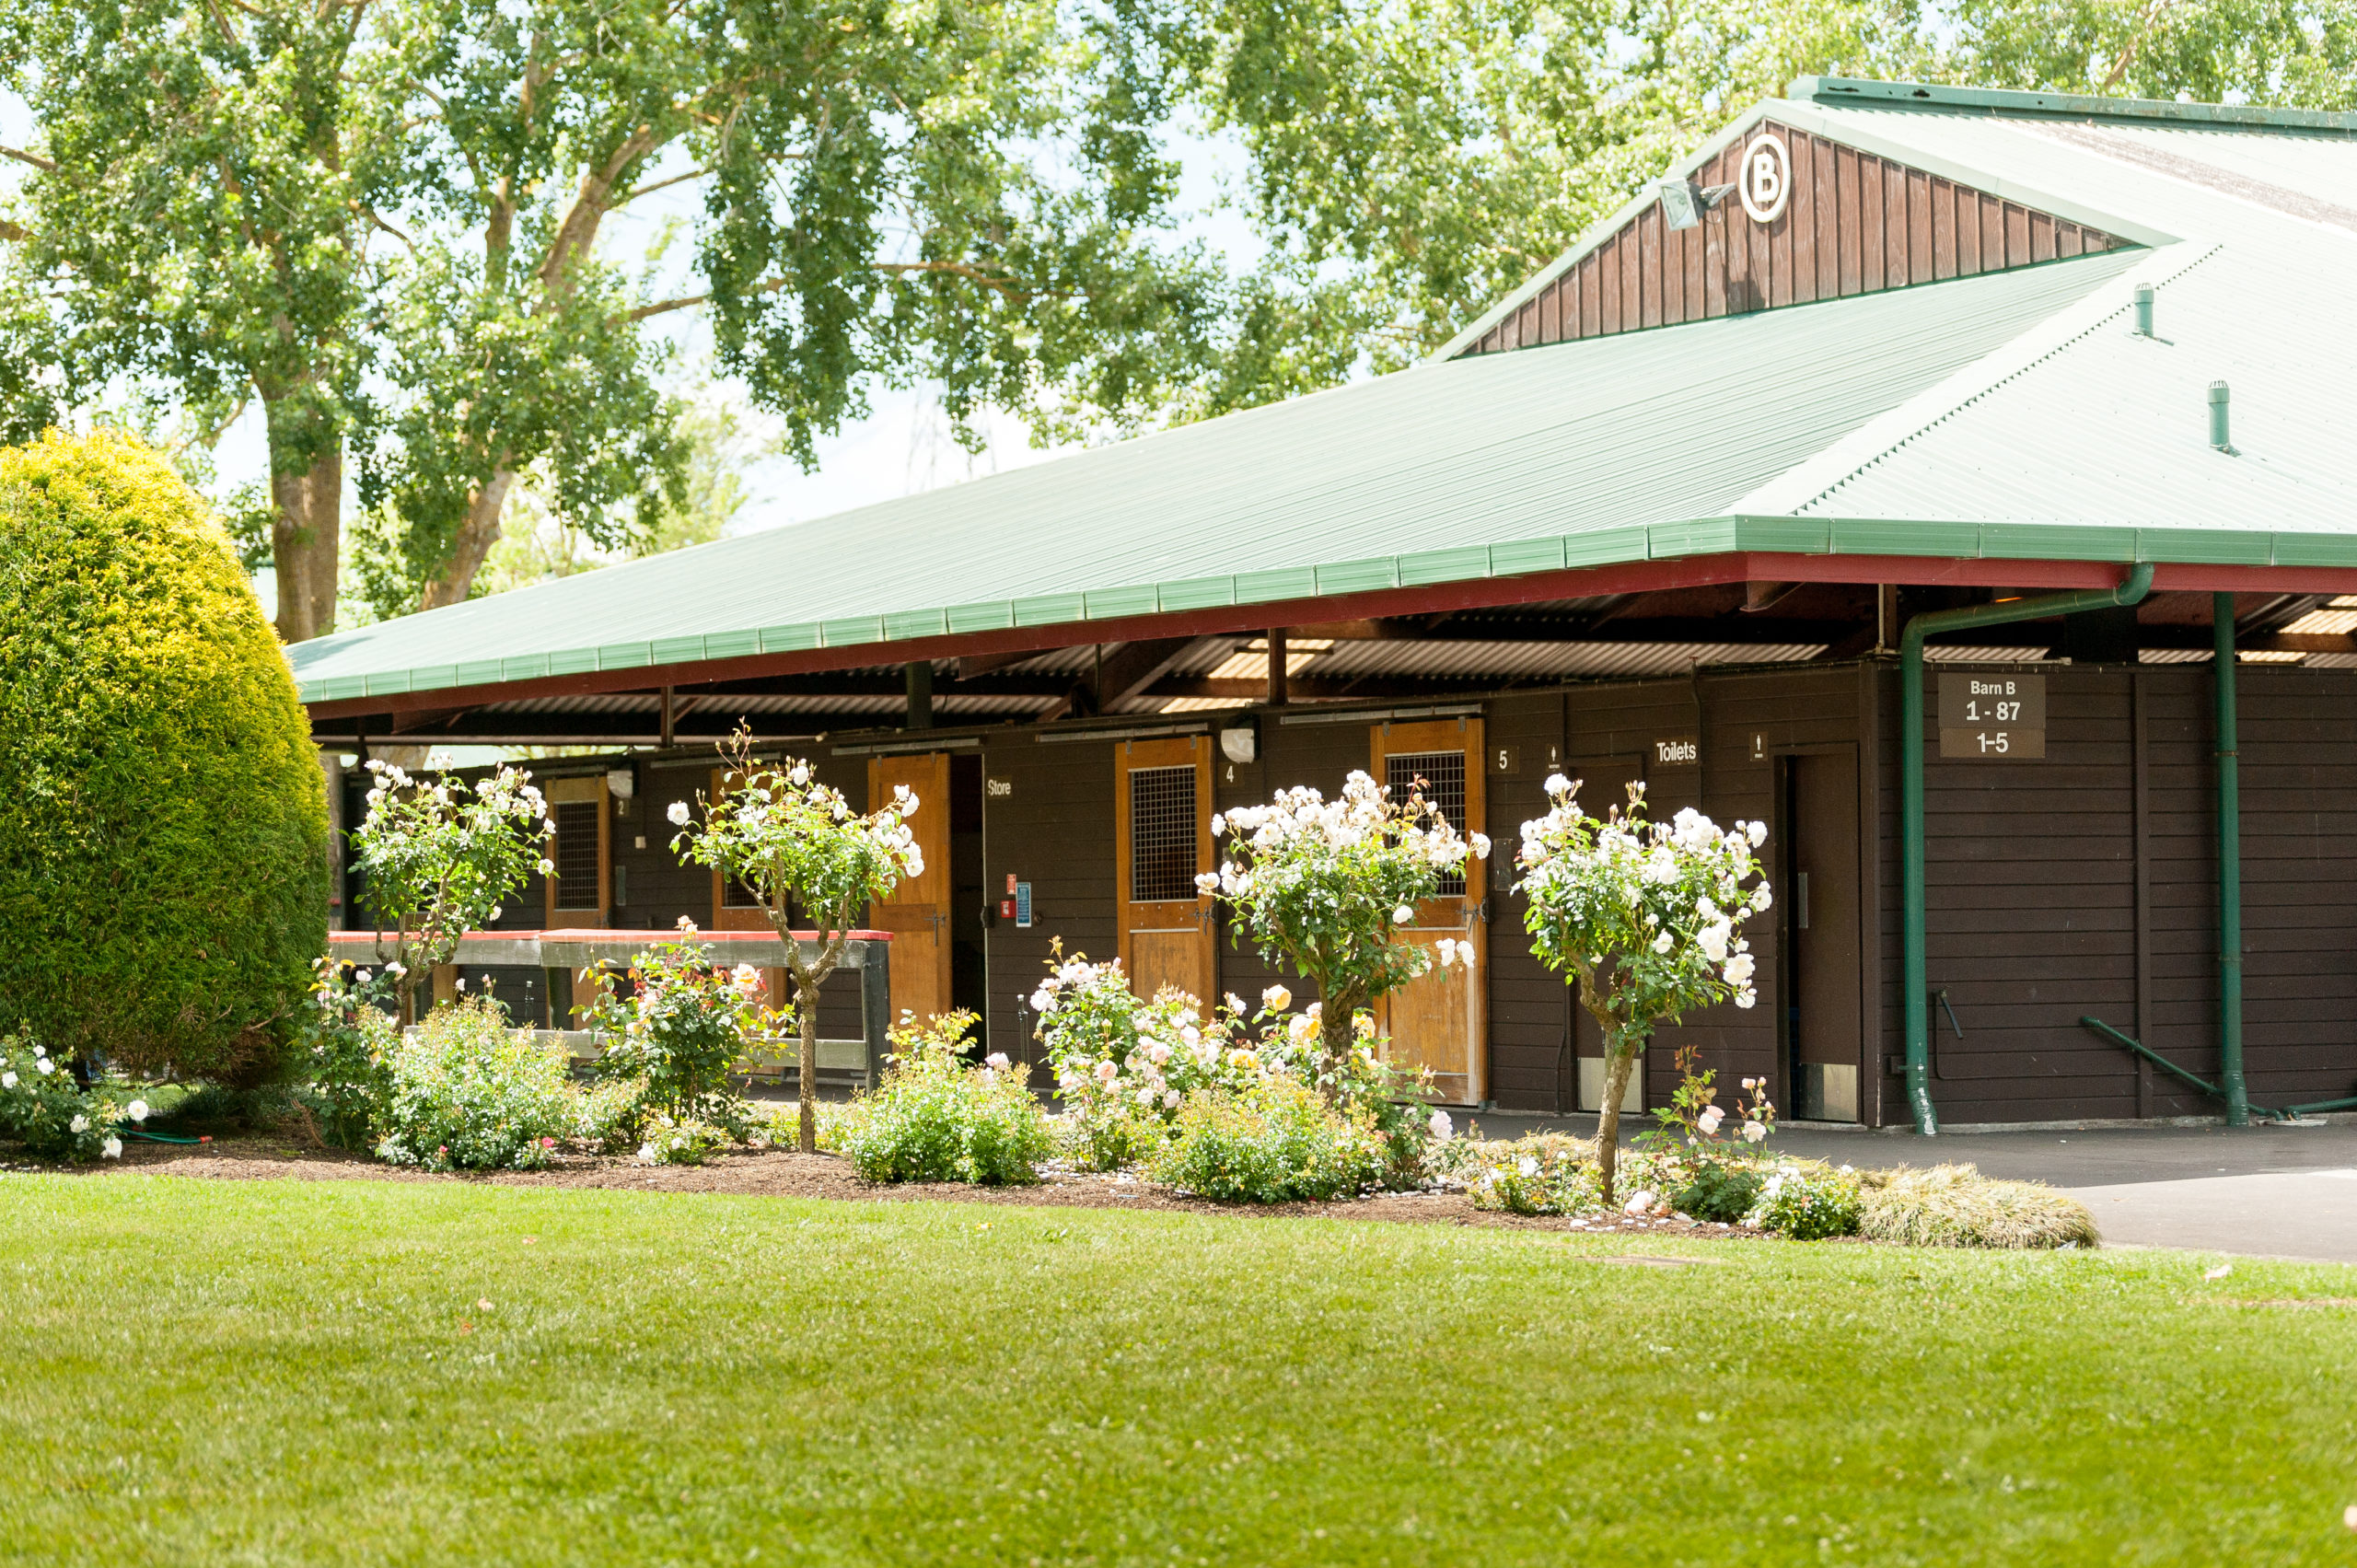 Stables, gardens, roses (1)